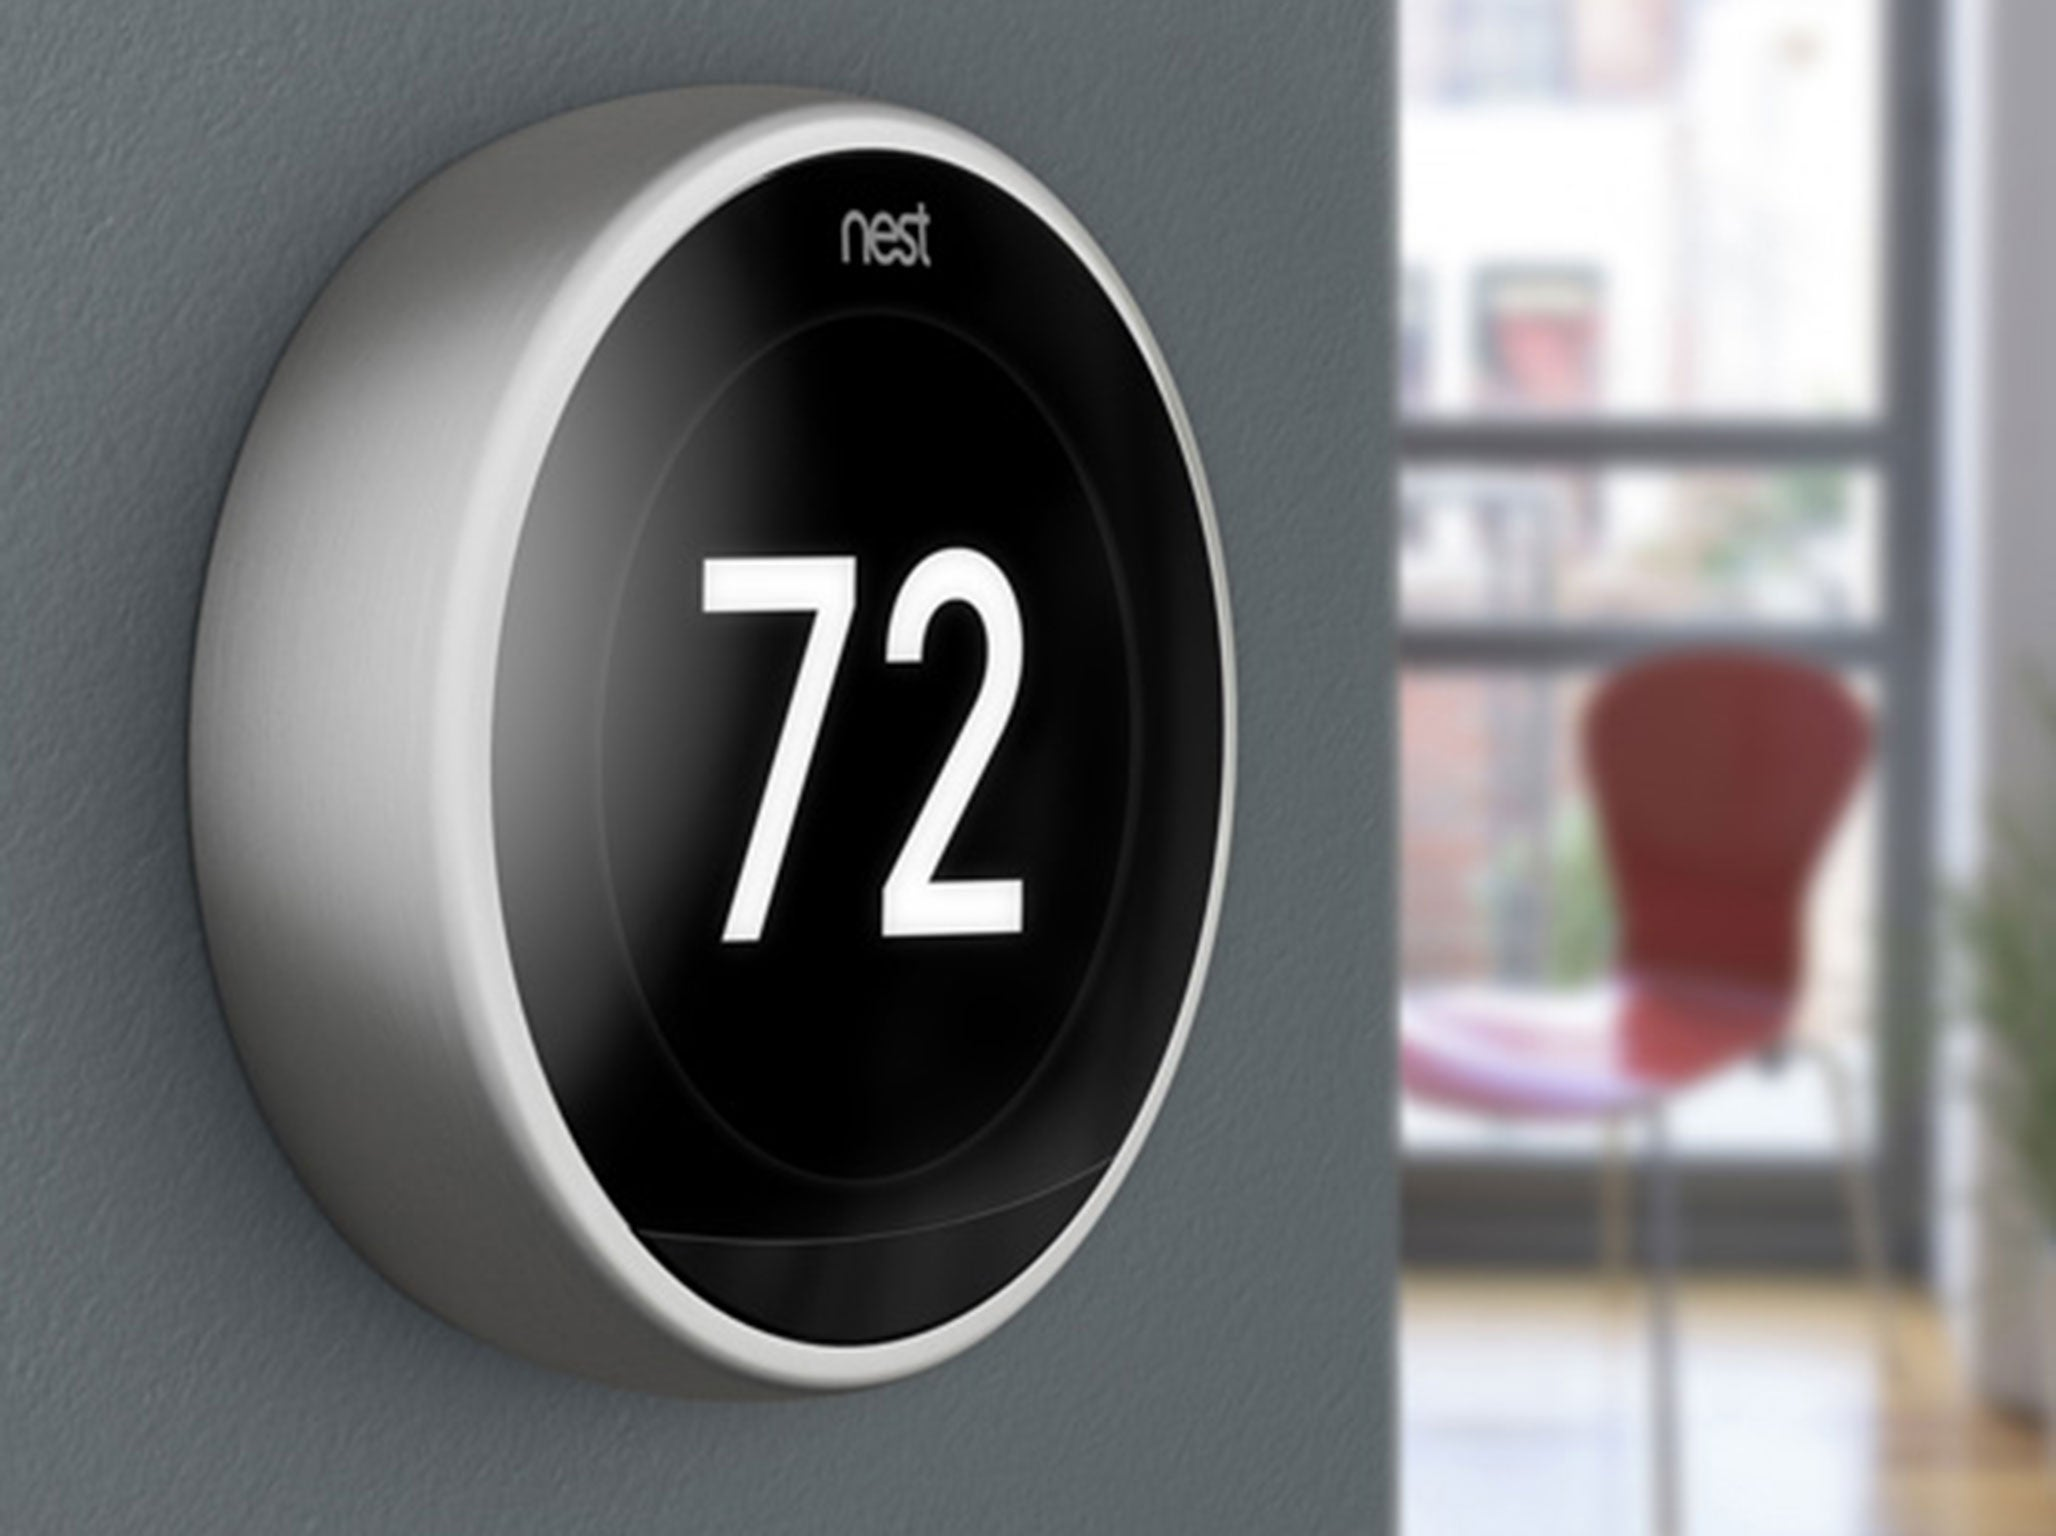 Nest Thermostat Gets Power To Control Heating Alongside